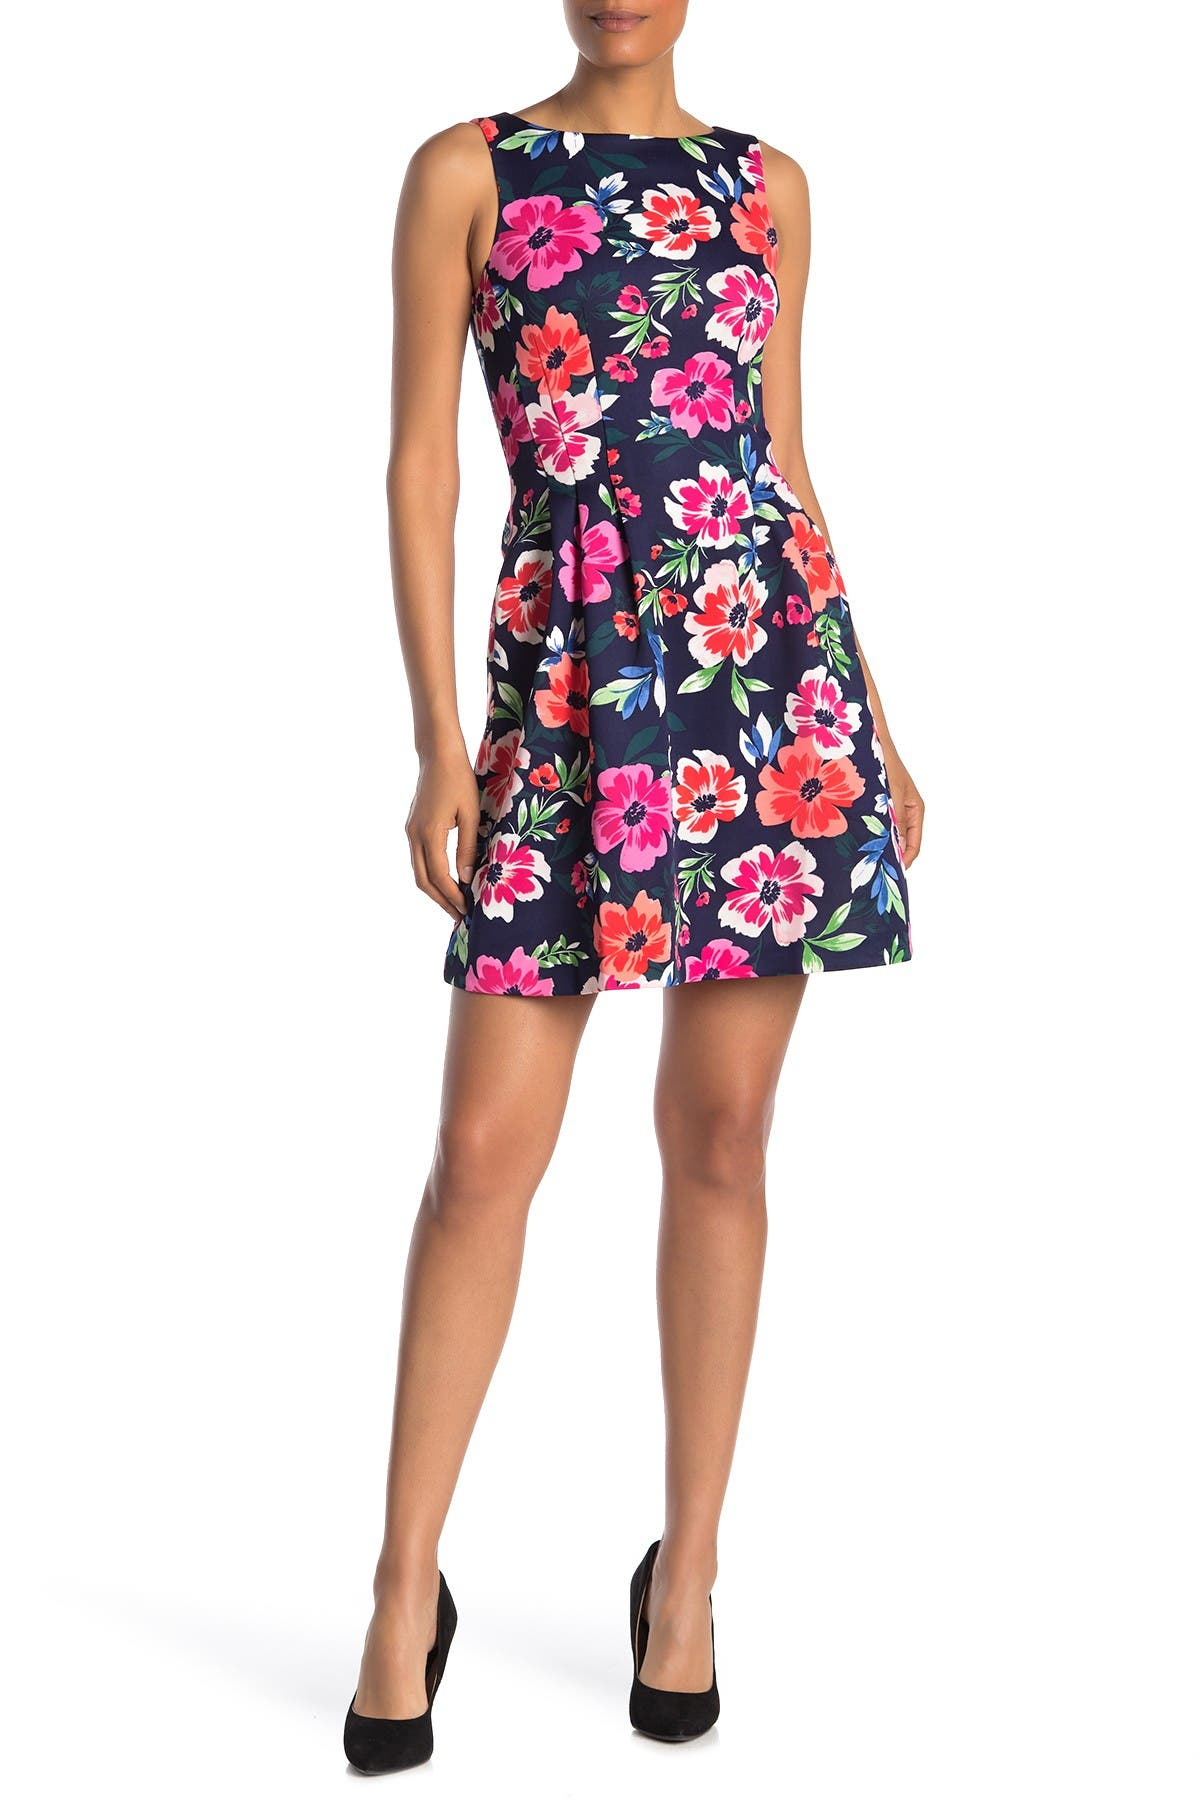 Image of Vince Camuto Floral Sleeveless Scuba Fit & Flare Dress